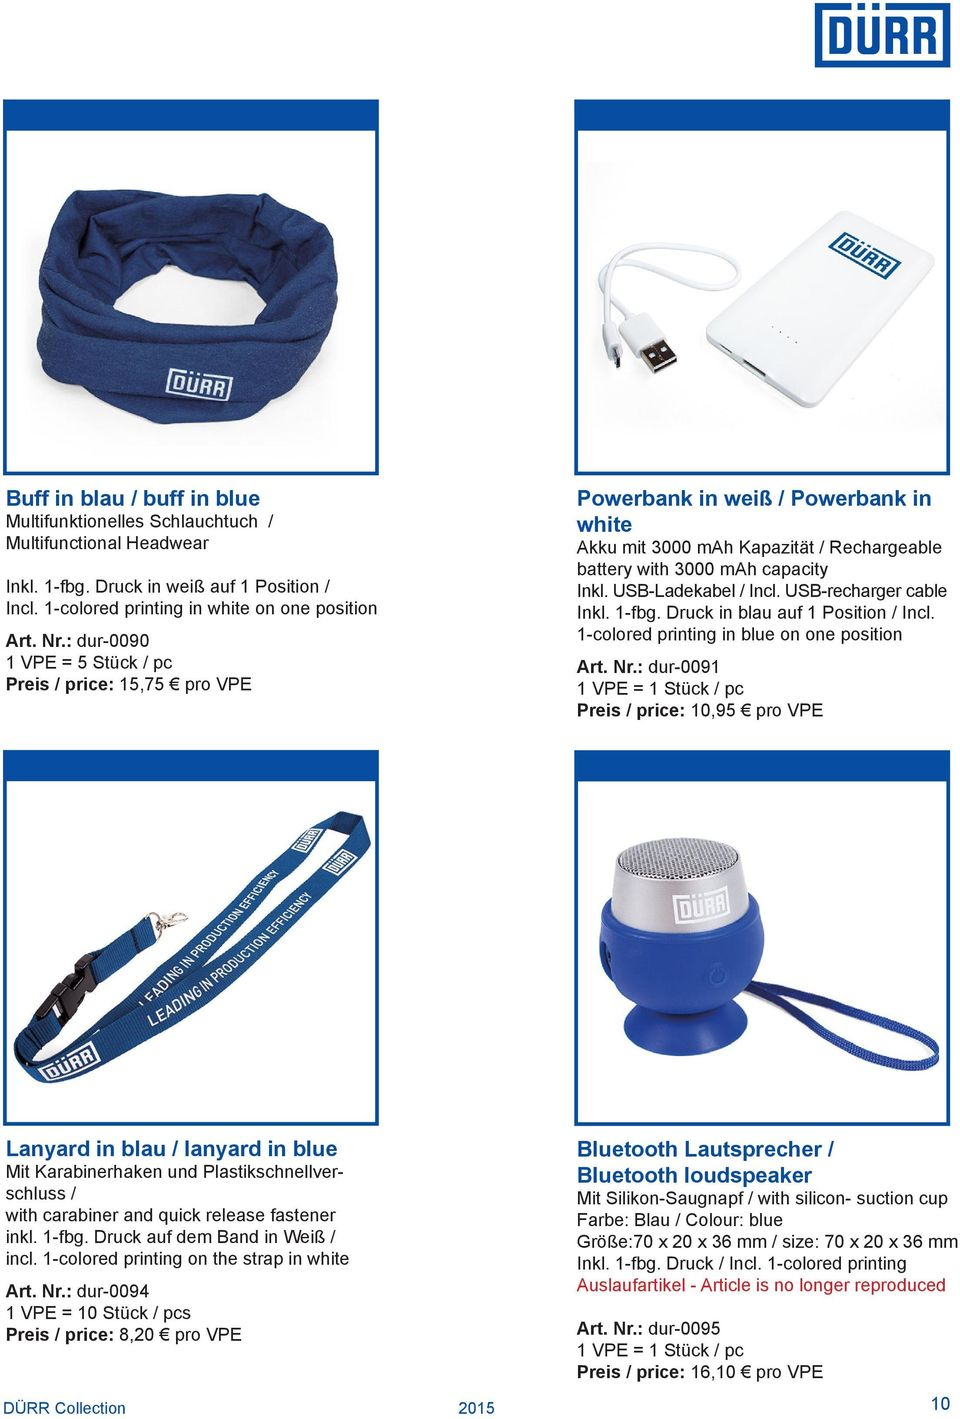 USB-Ladekabel / Incl. USB-recharger cable Inkl. 1-fbg. Druck in blau auf 1 Position / Incl. 1-colored printing in blue on one position Art. Nr.